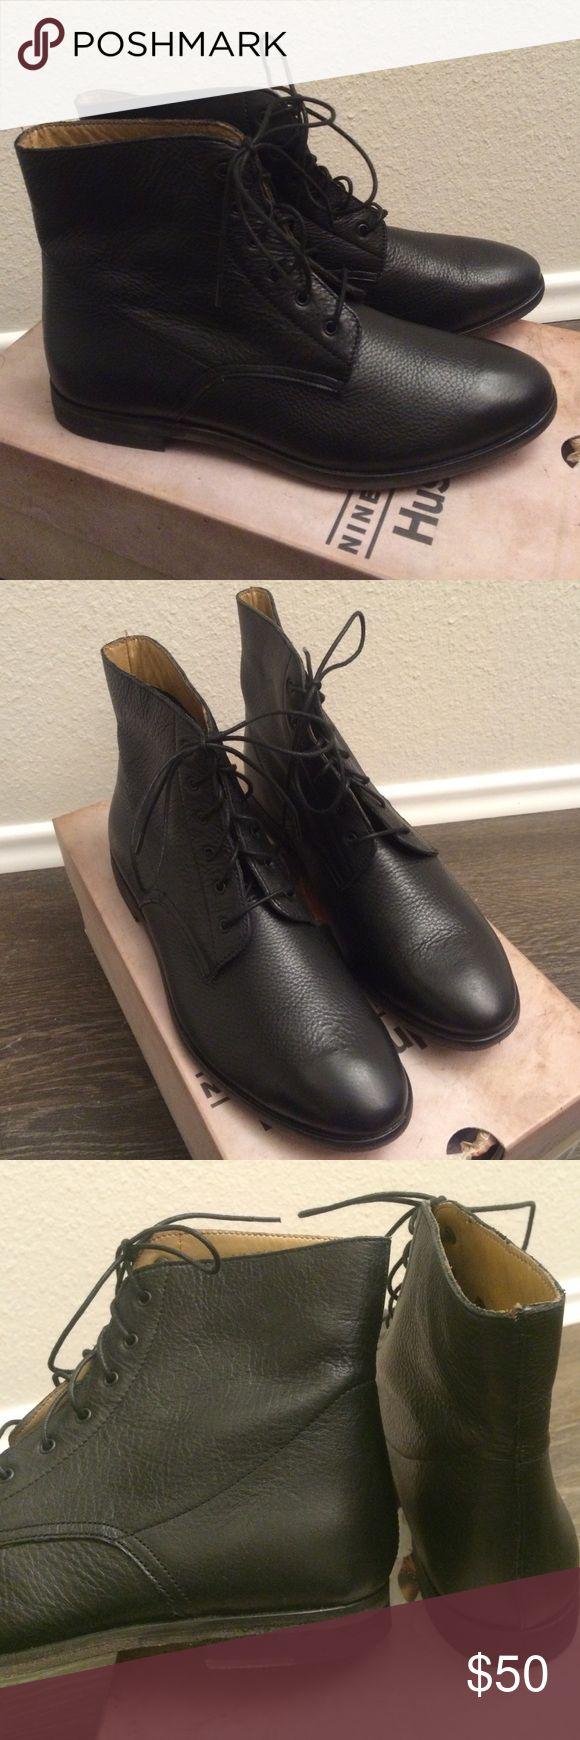 Hush Puppies Edlyn Leather Lace Up Boots All leather lace up boots from Hush Puppies! These have not been worn, still have the box they came in. Note, they say US 8.5 / EUR 40. Would fit a true 8.5 or 8 with thicker socks. Hush Puppies Shoes Lace Up Boots